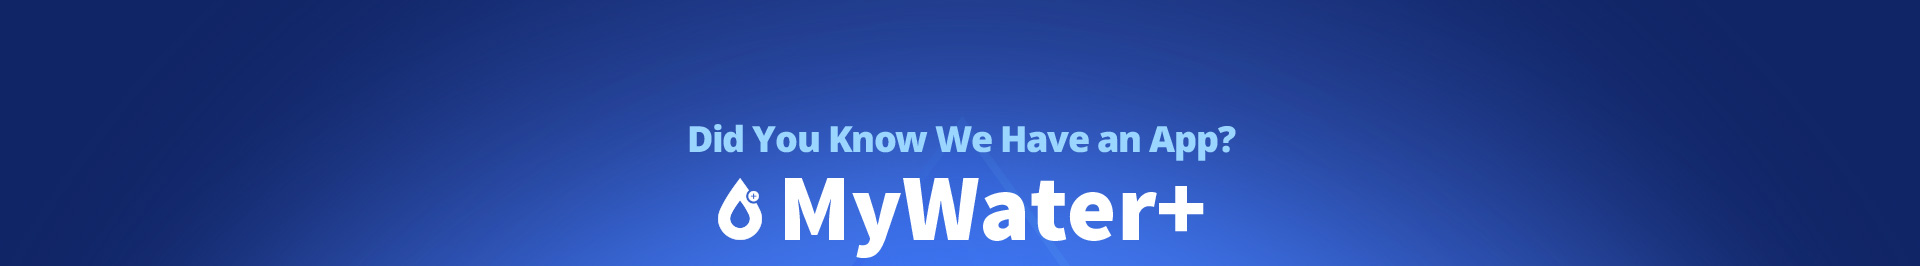 Try Our New App MyWater+